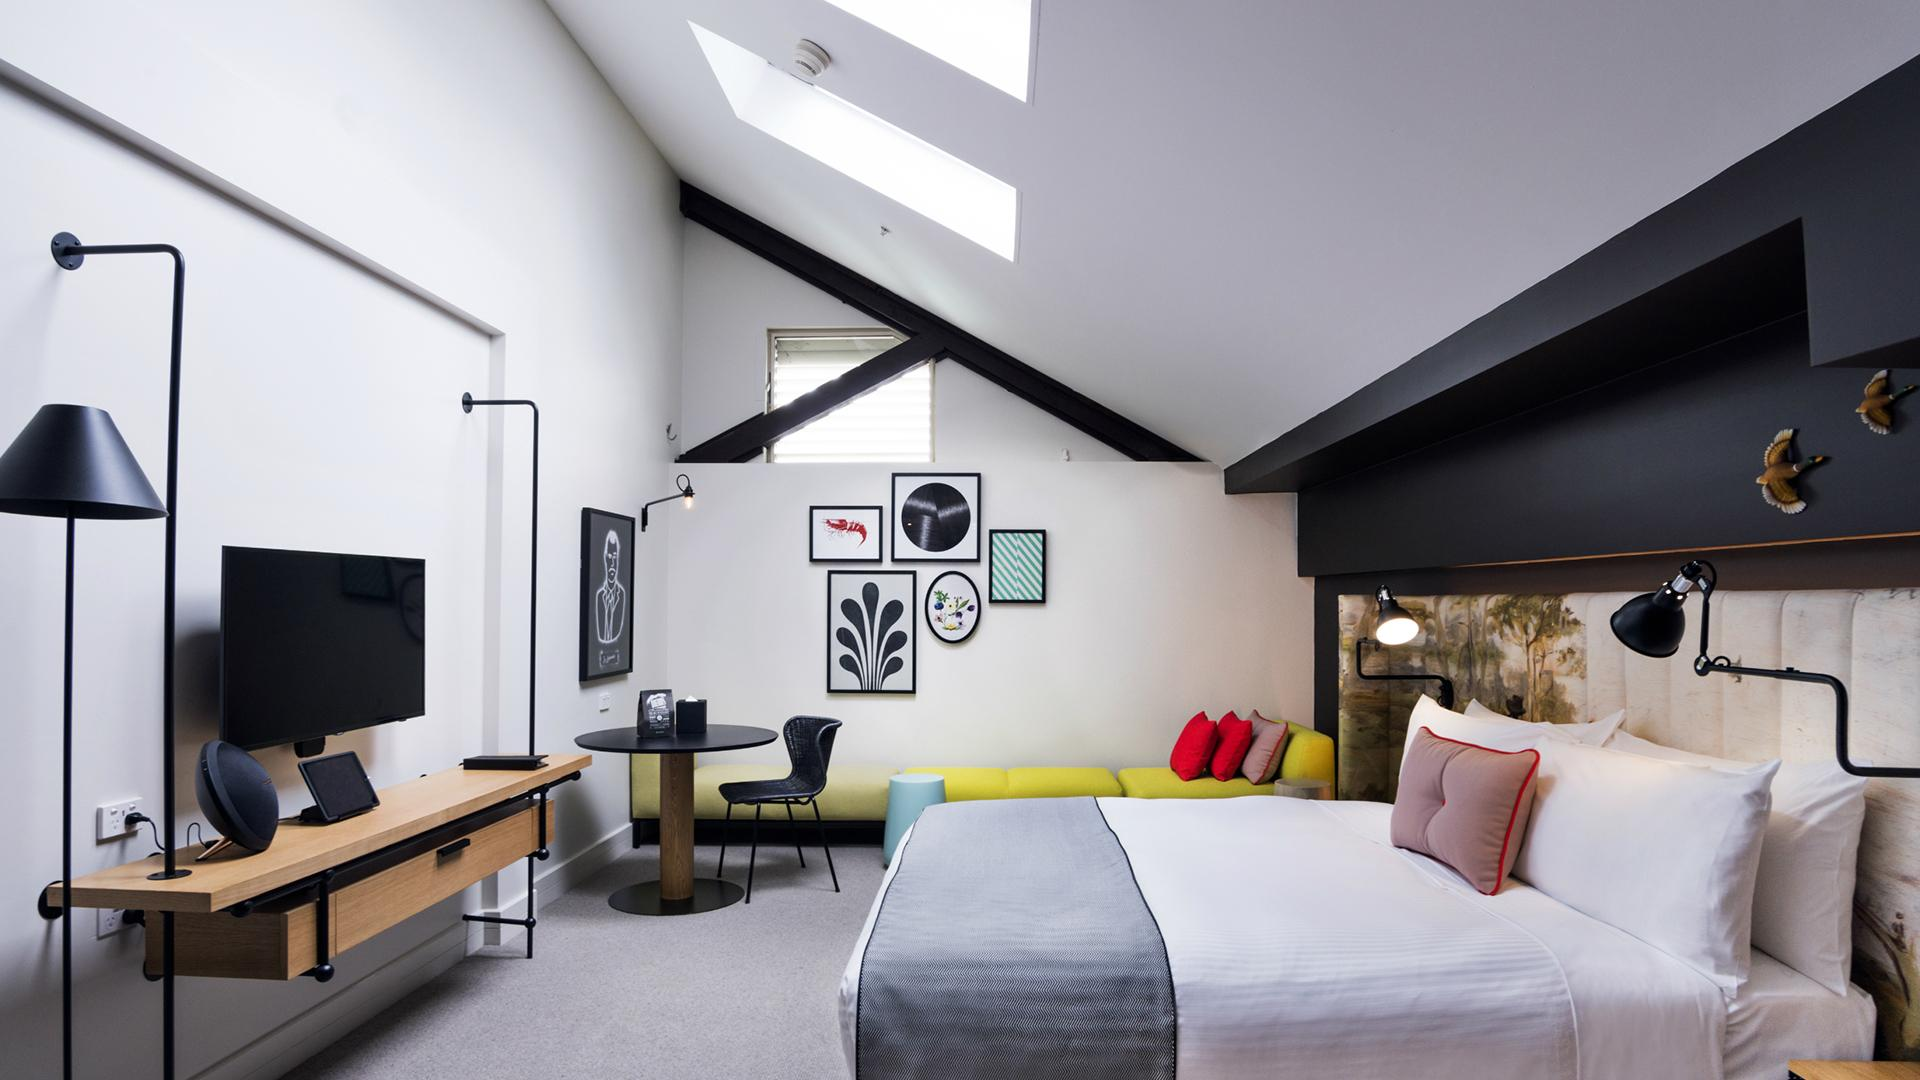 Superoo Room image 1 at Ovolo Woolloomooloo by null, New South Wales, Australia